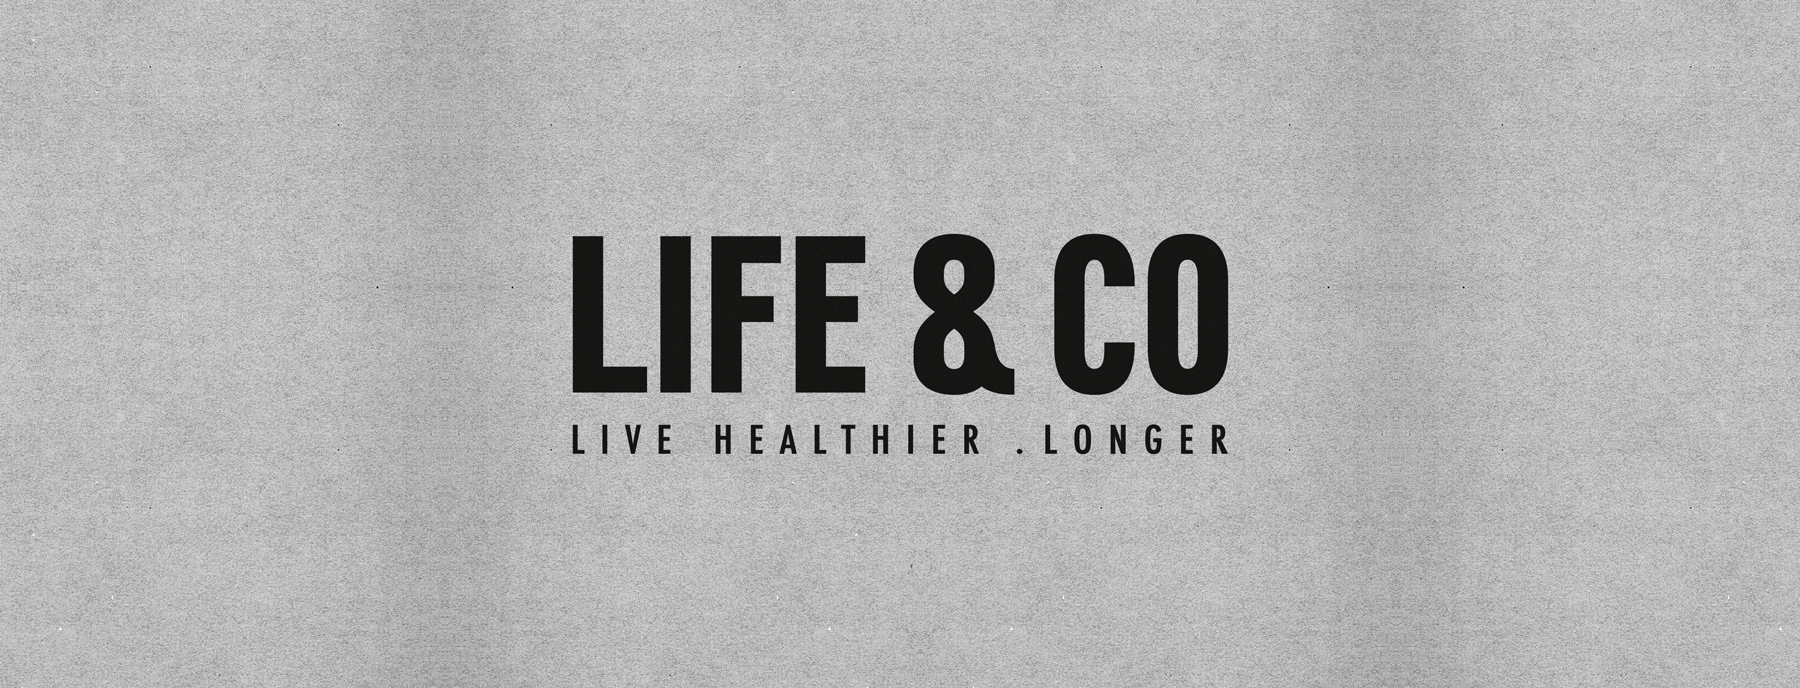 "LOGO DESIGN AND BRANDING FOR ""LIFE&CO"" Life&Co is an on- and offline lifestyle platform, focusing and offering new ways to age healthy by simple, and easy-to-follow habit programs (food, body, soul).  Paying great importance to instant wellbeing and joy as part of being an investment in healthy ageing."